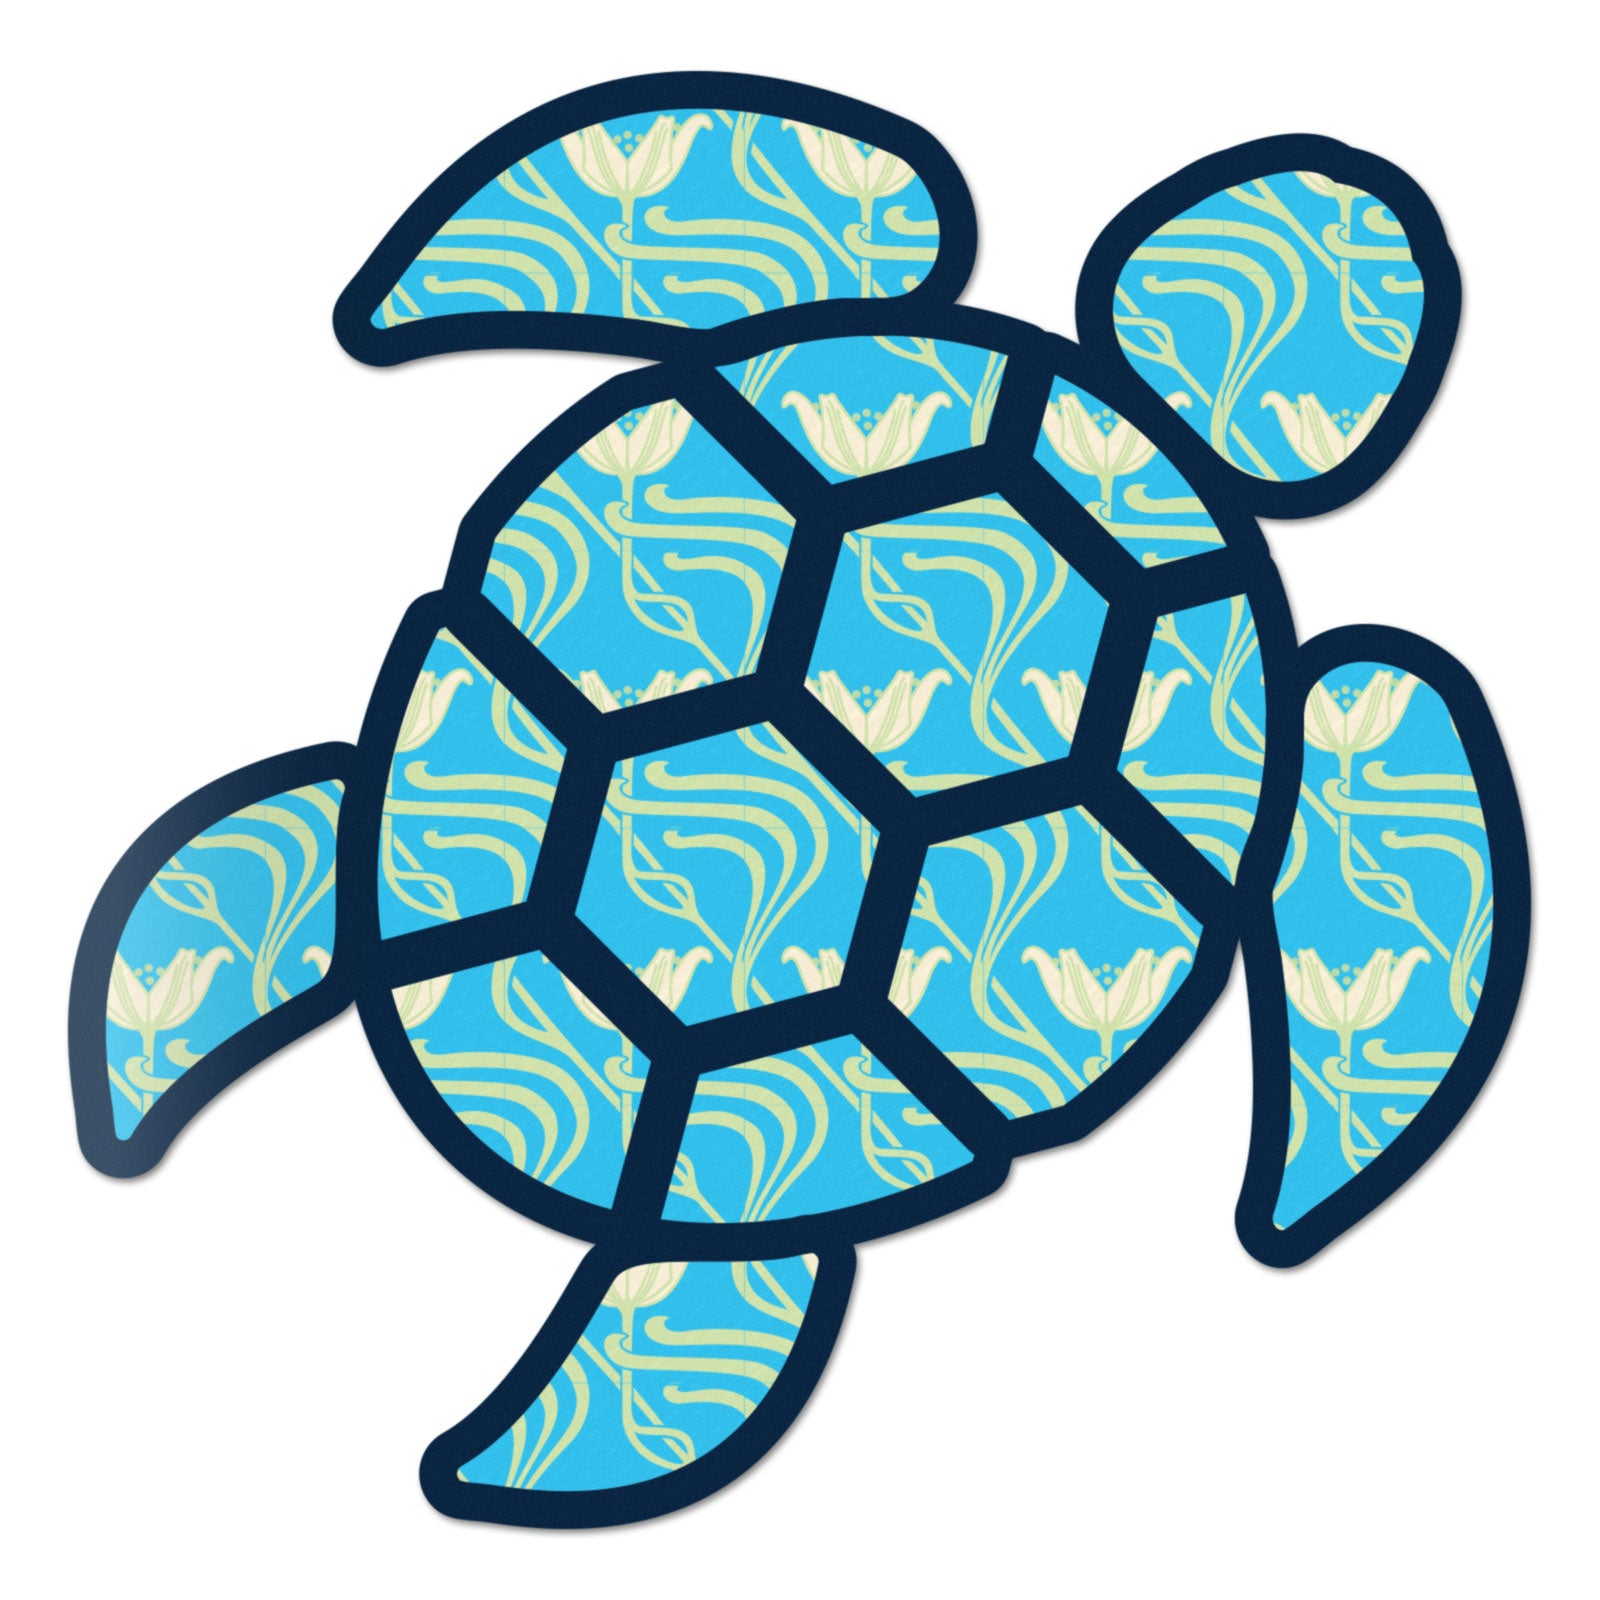 Red Hound Auto Sea Turtle Aqua Flower Sticker Decal Wall Tumbler Cup Window Car Truck Laptop 2.5 Inches